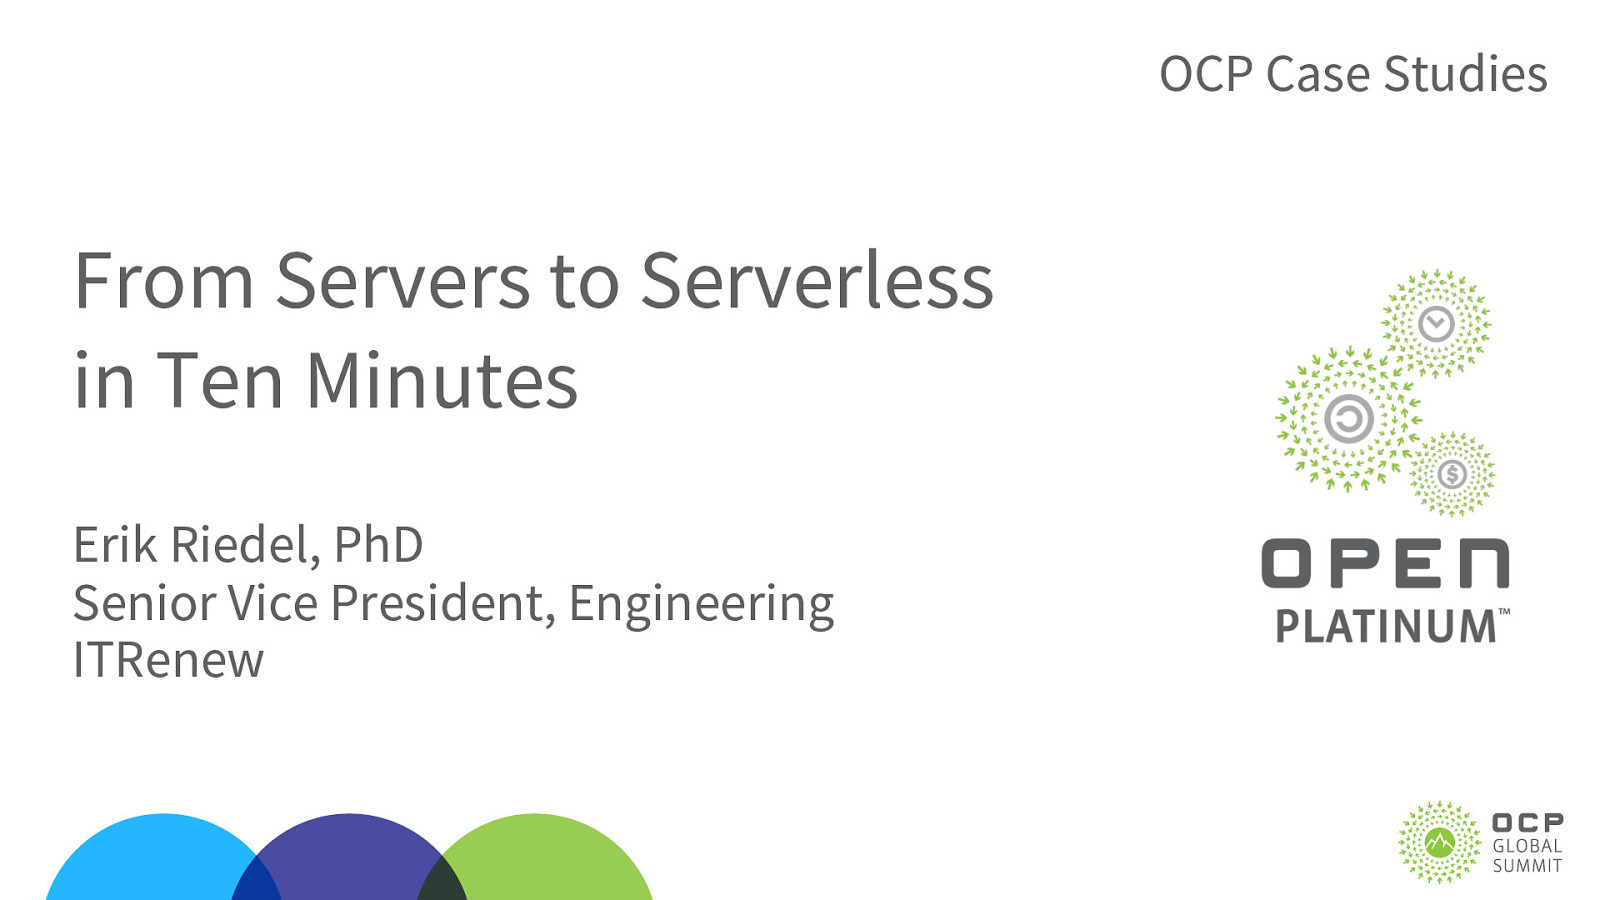 From Servers to Serverless